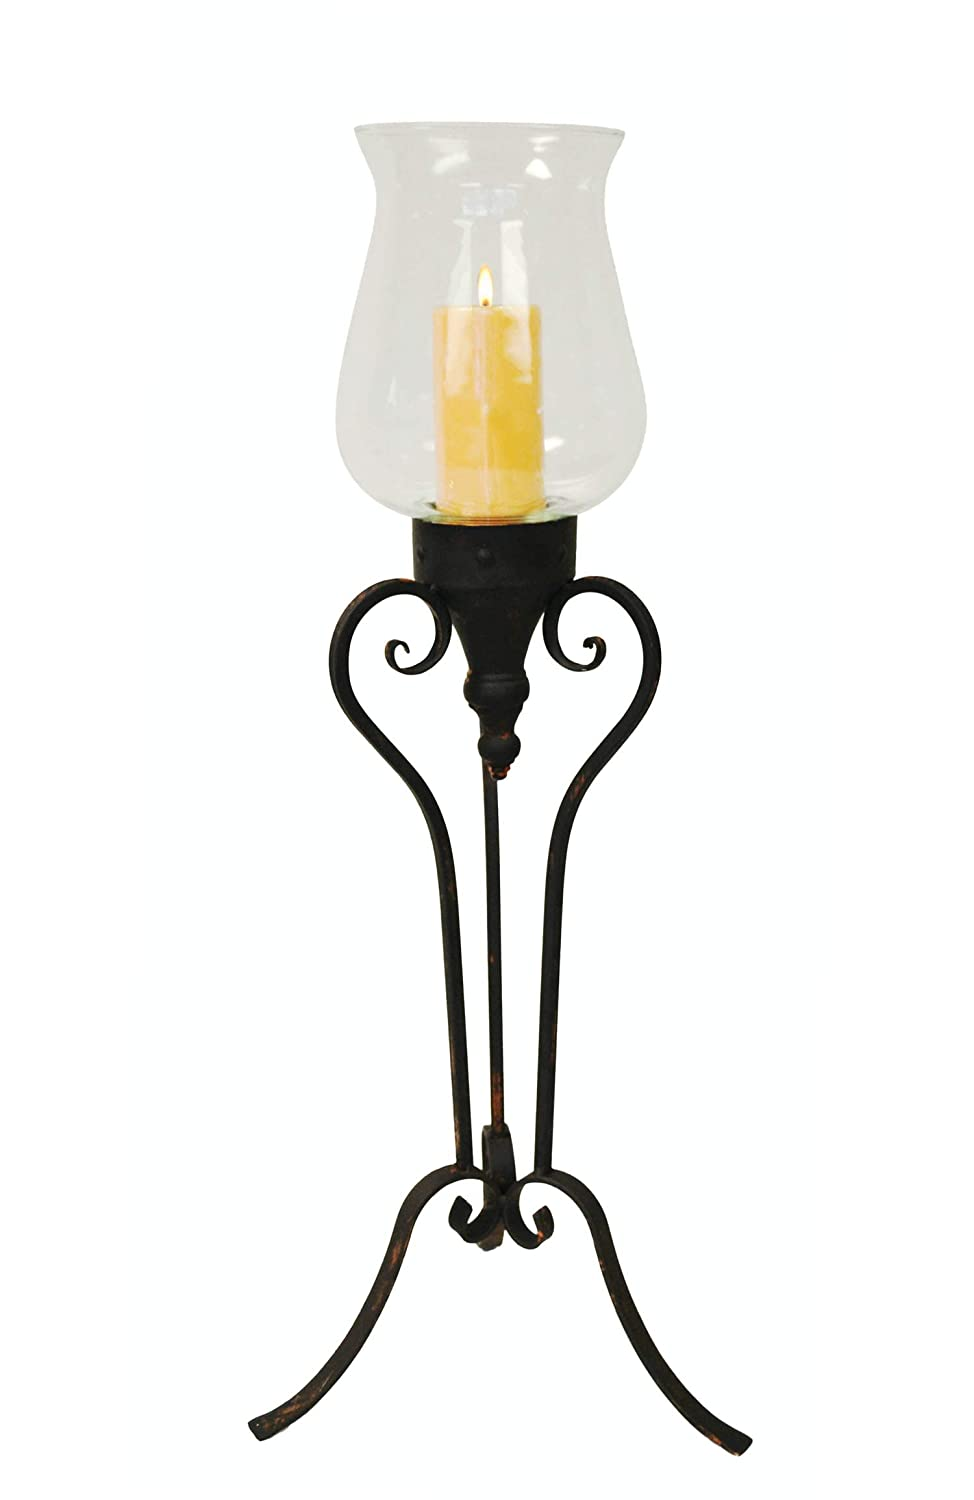 CL229317 PierSurplus Large Floor Standing Metal and Glass Hurricane Candle Holder Product SKU